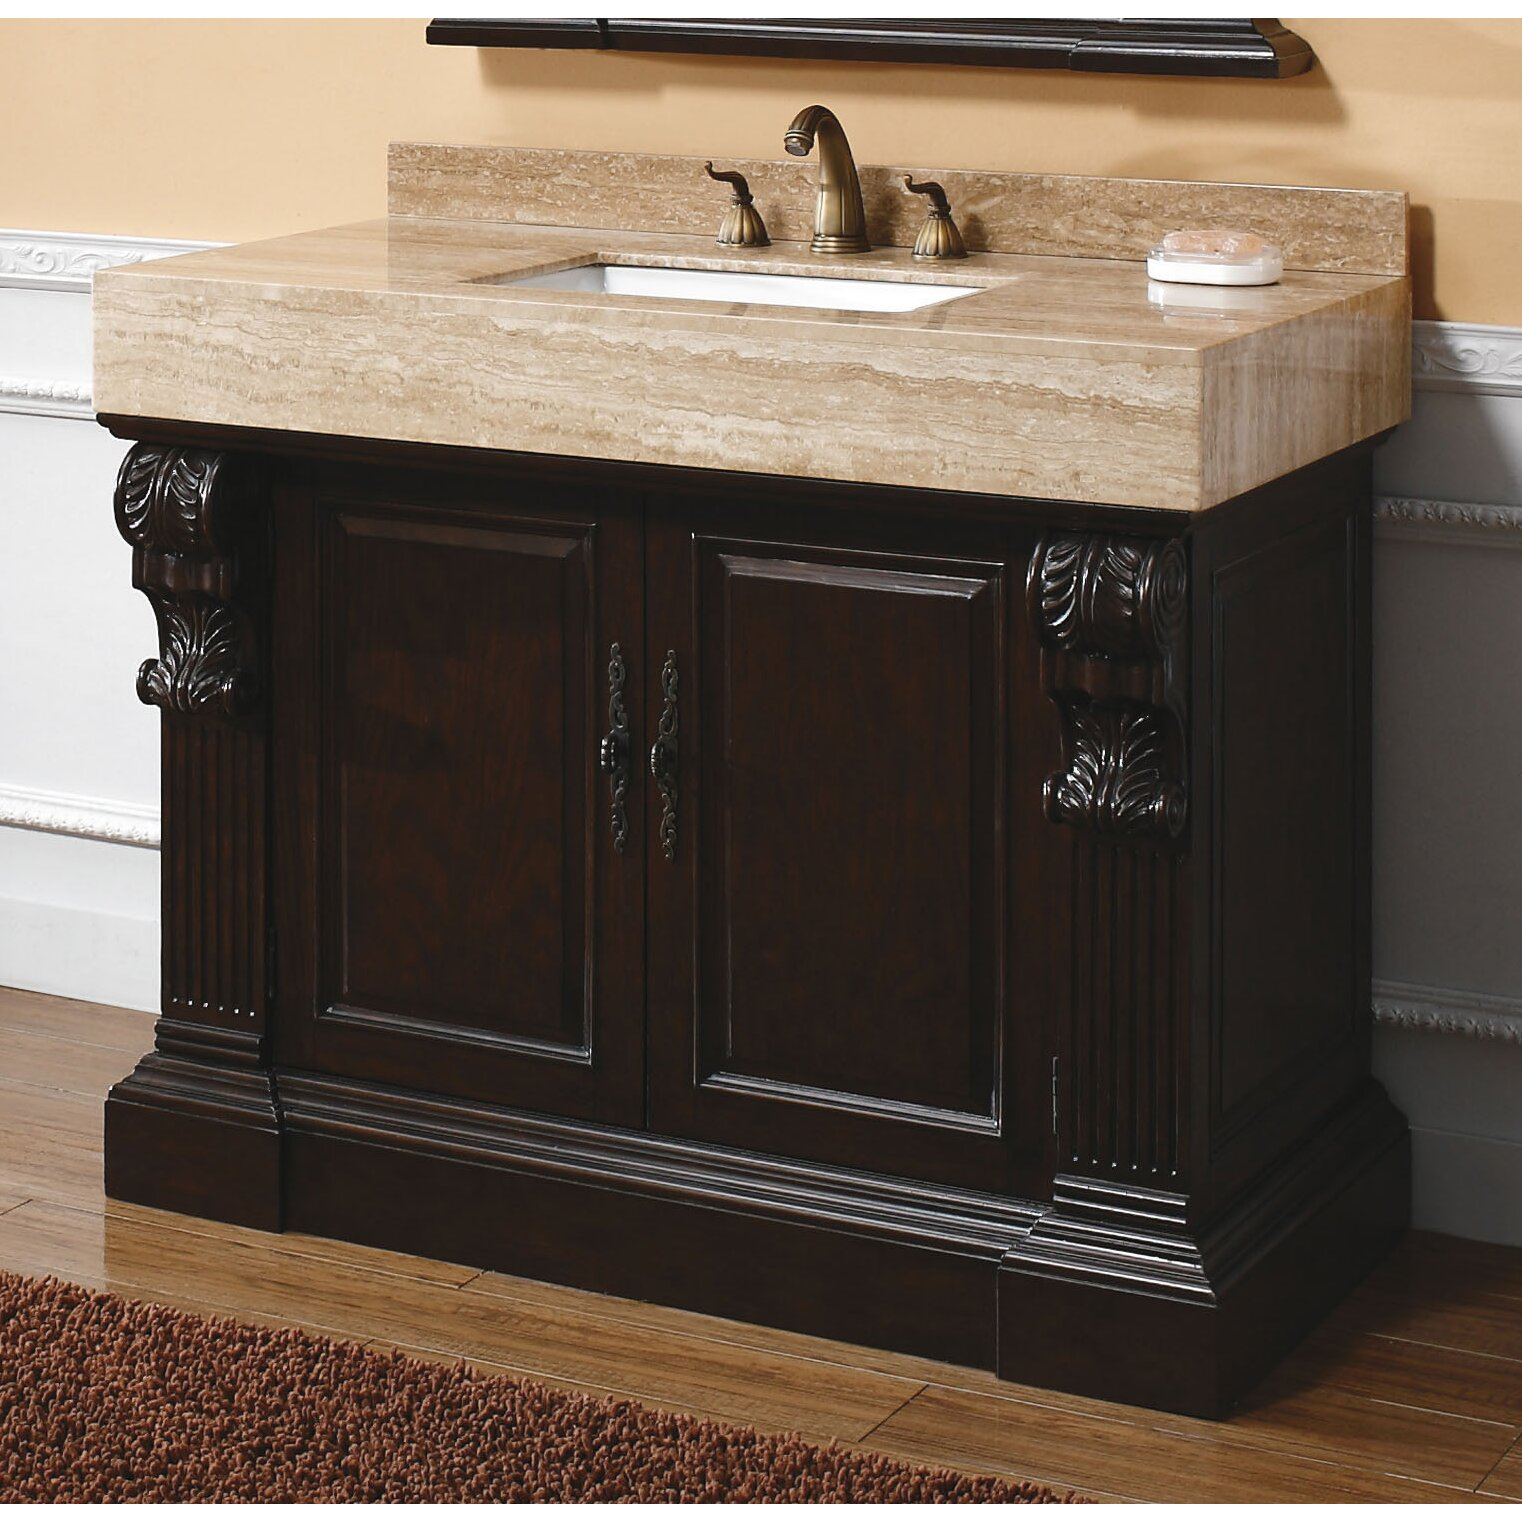 James martin furniture toscano 42 single cherry bathroom - Wayfair furniture bathroom vanities ...